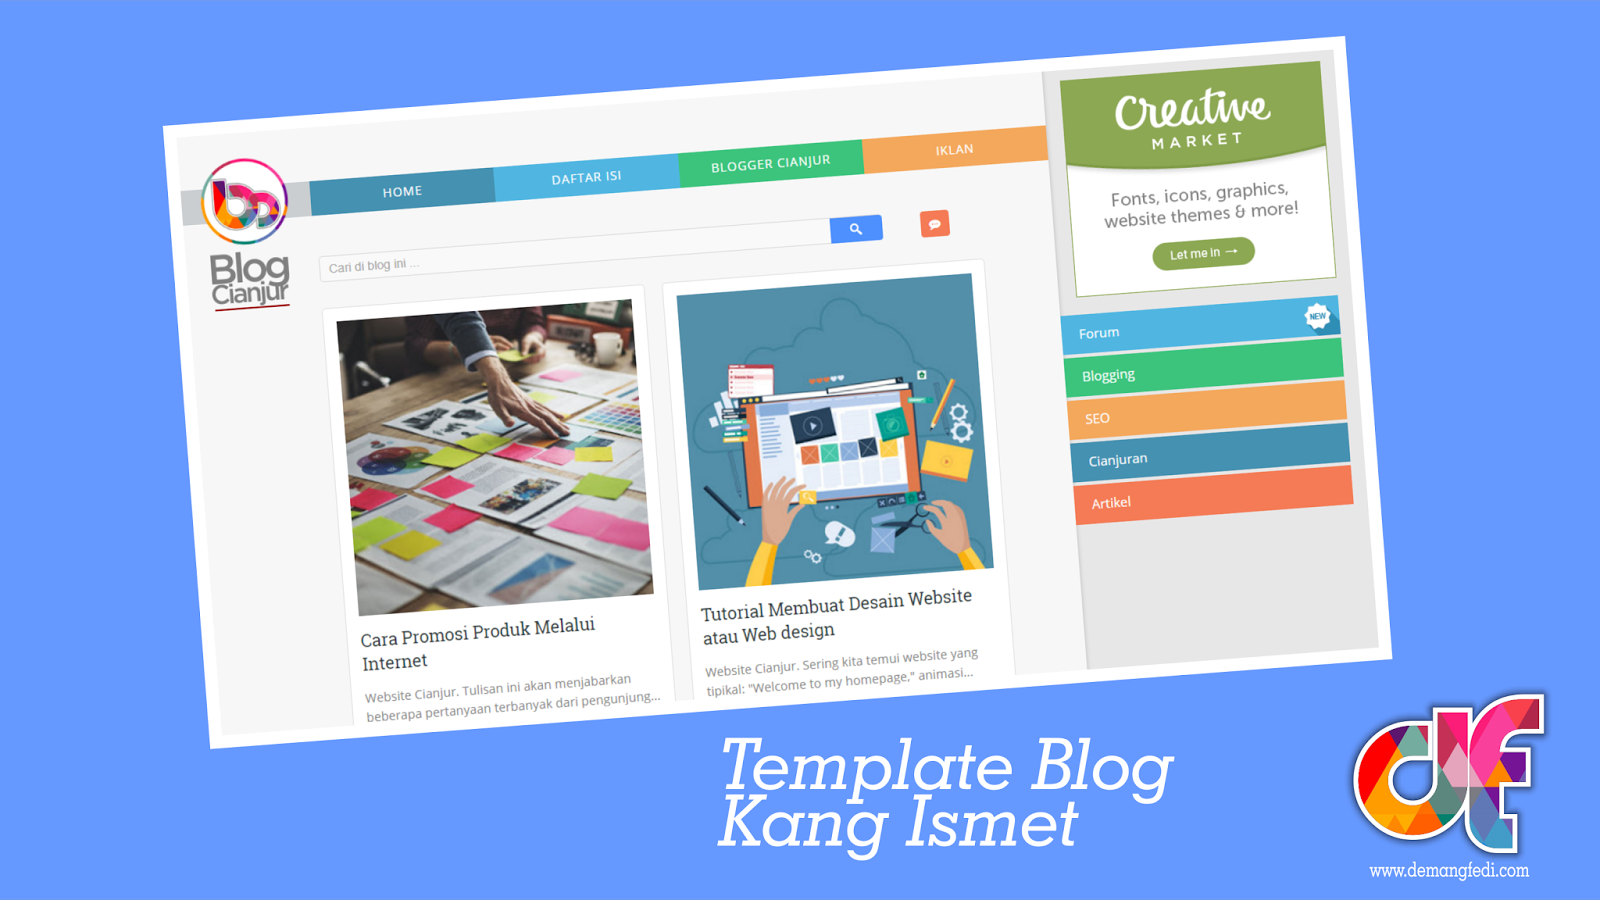 Template Blog Kang Ismet